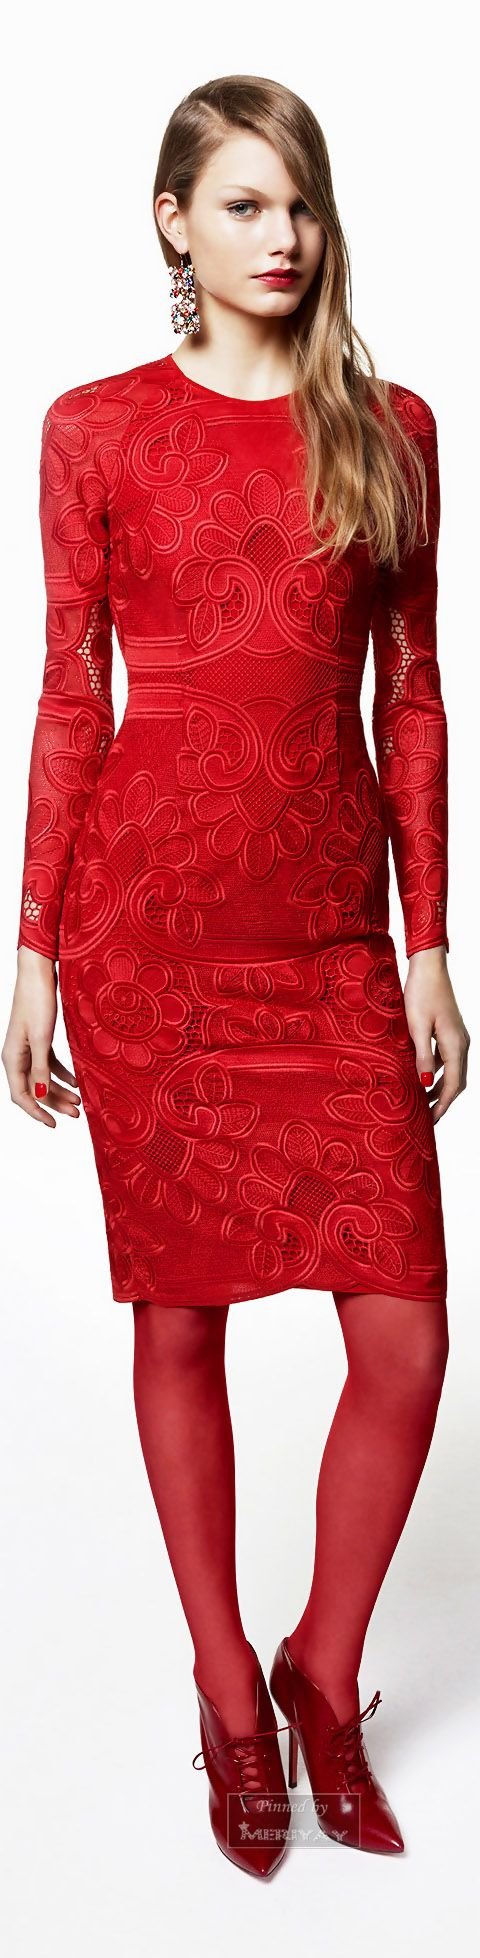 Blumarine.Pre-Fall 2015. women fashion outfit clothing style apparel @roressclothes closet ideas